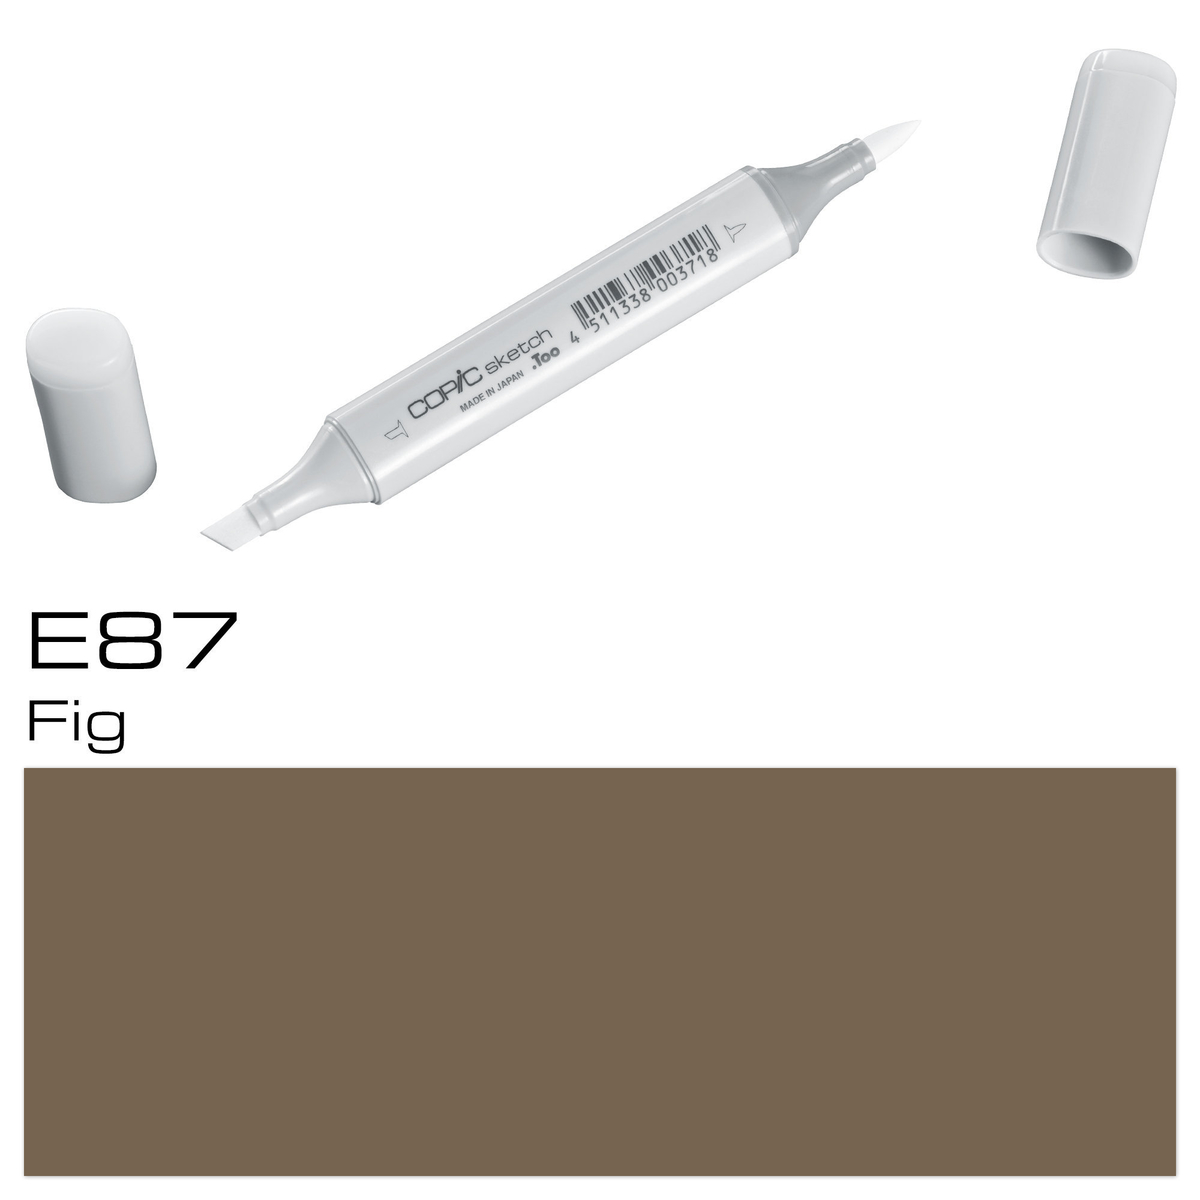 Copic Sketch E 87 fig